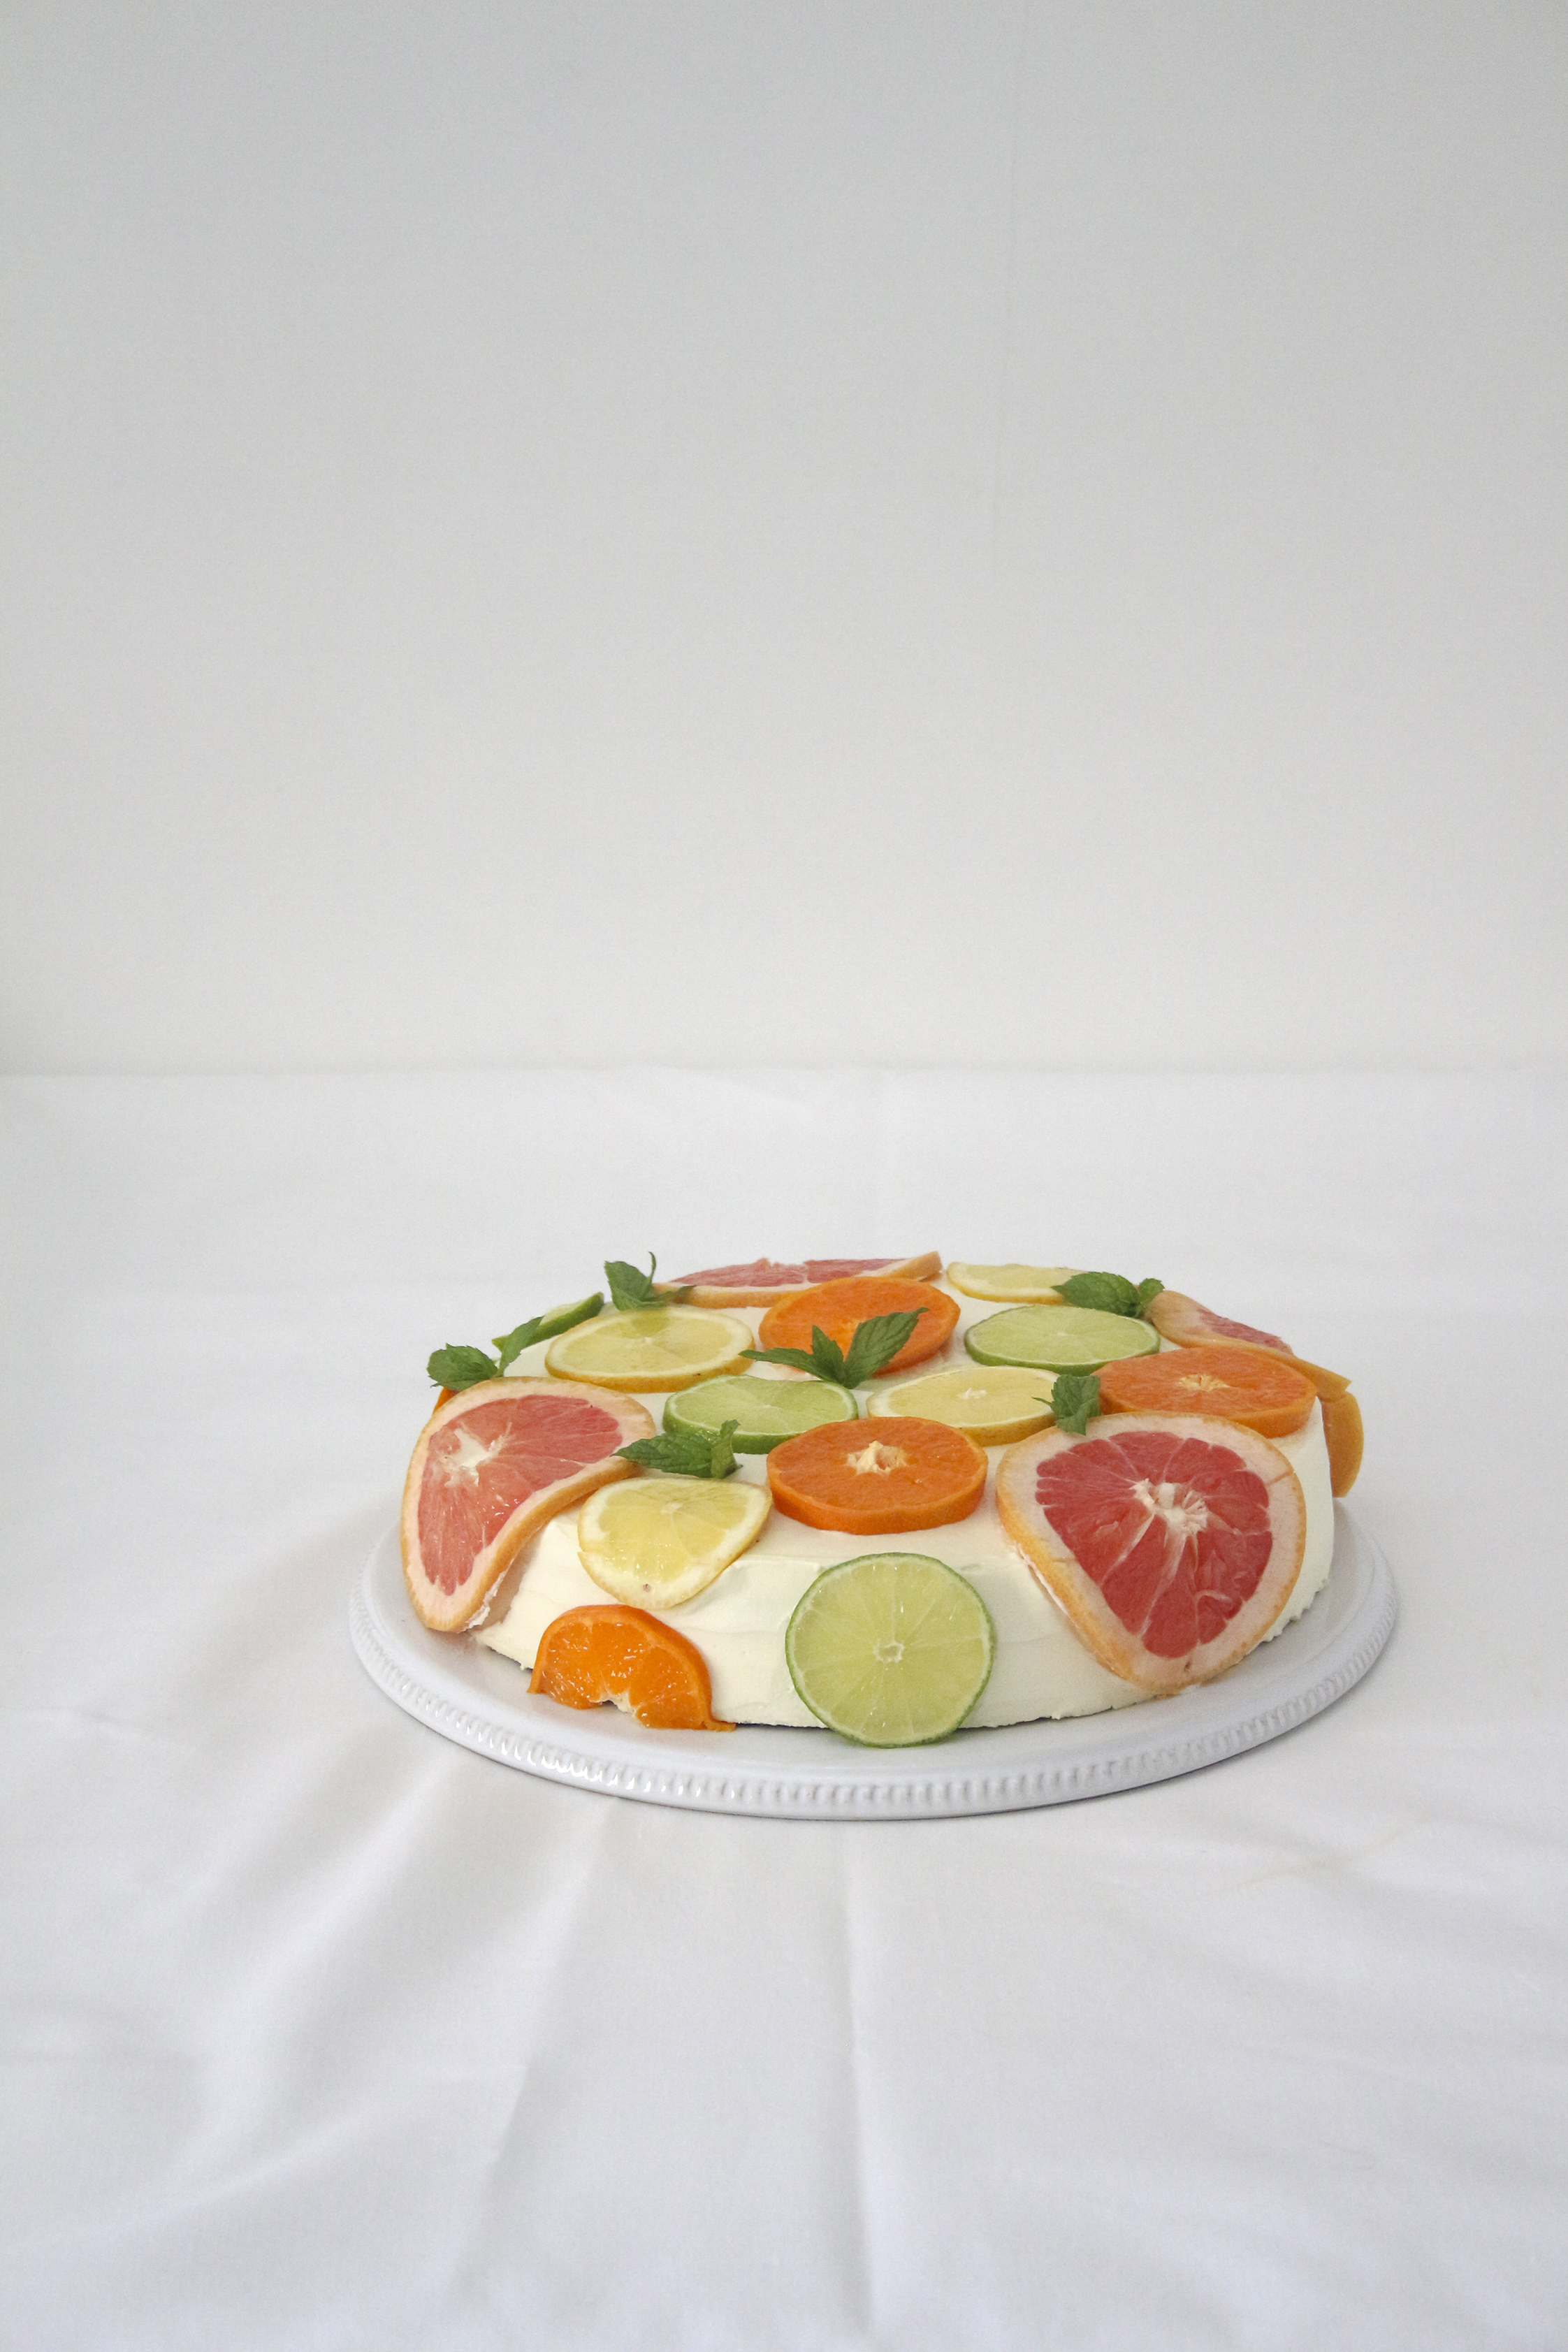 Coconut Cake with Citrus9a